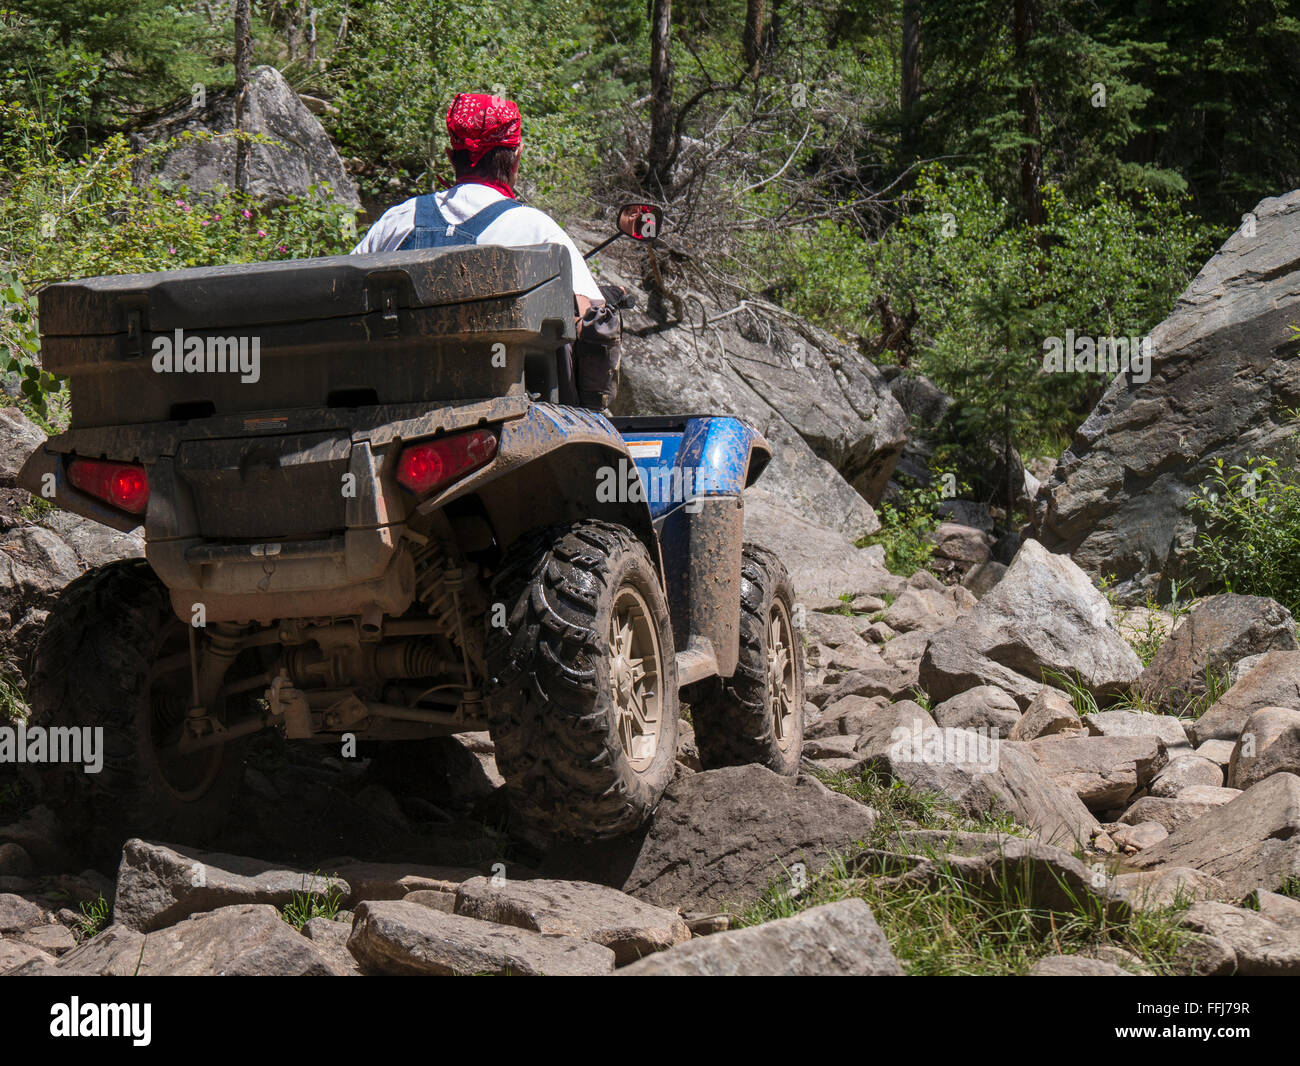 ATV on Union Canyon Trail, Gunnison National Forest, Colorado. - Stock Image